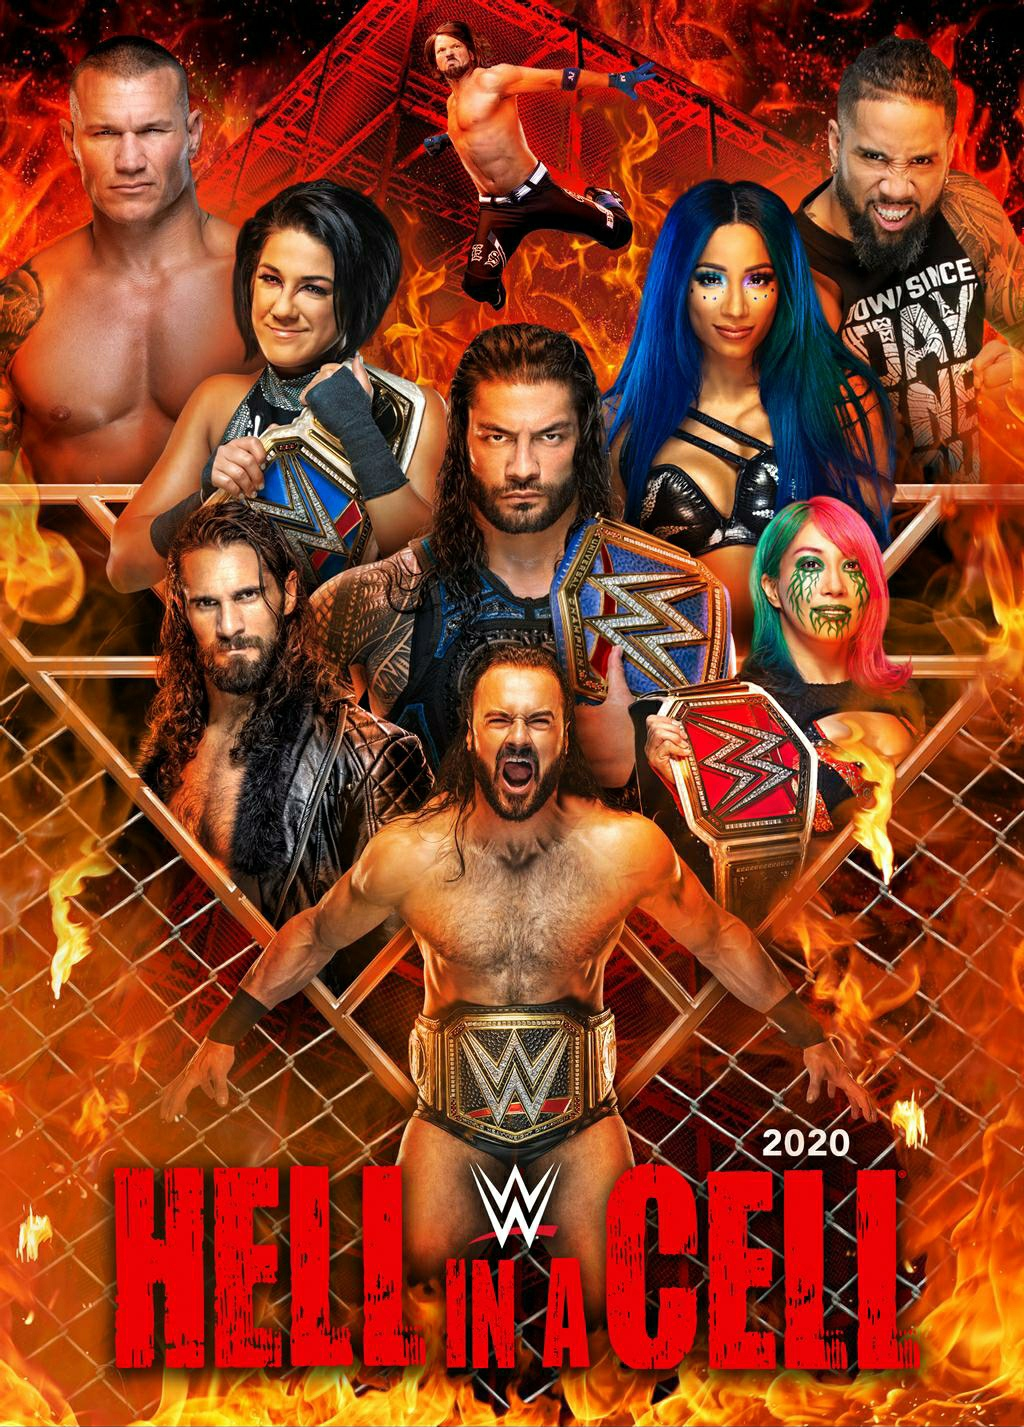 WWE Hell In A Cell 2020 English Kickoff PPV 720p HDRip 1.2GB | 600MB Full Show x264 AAC